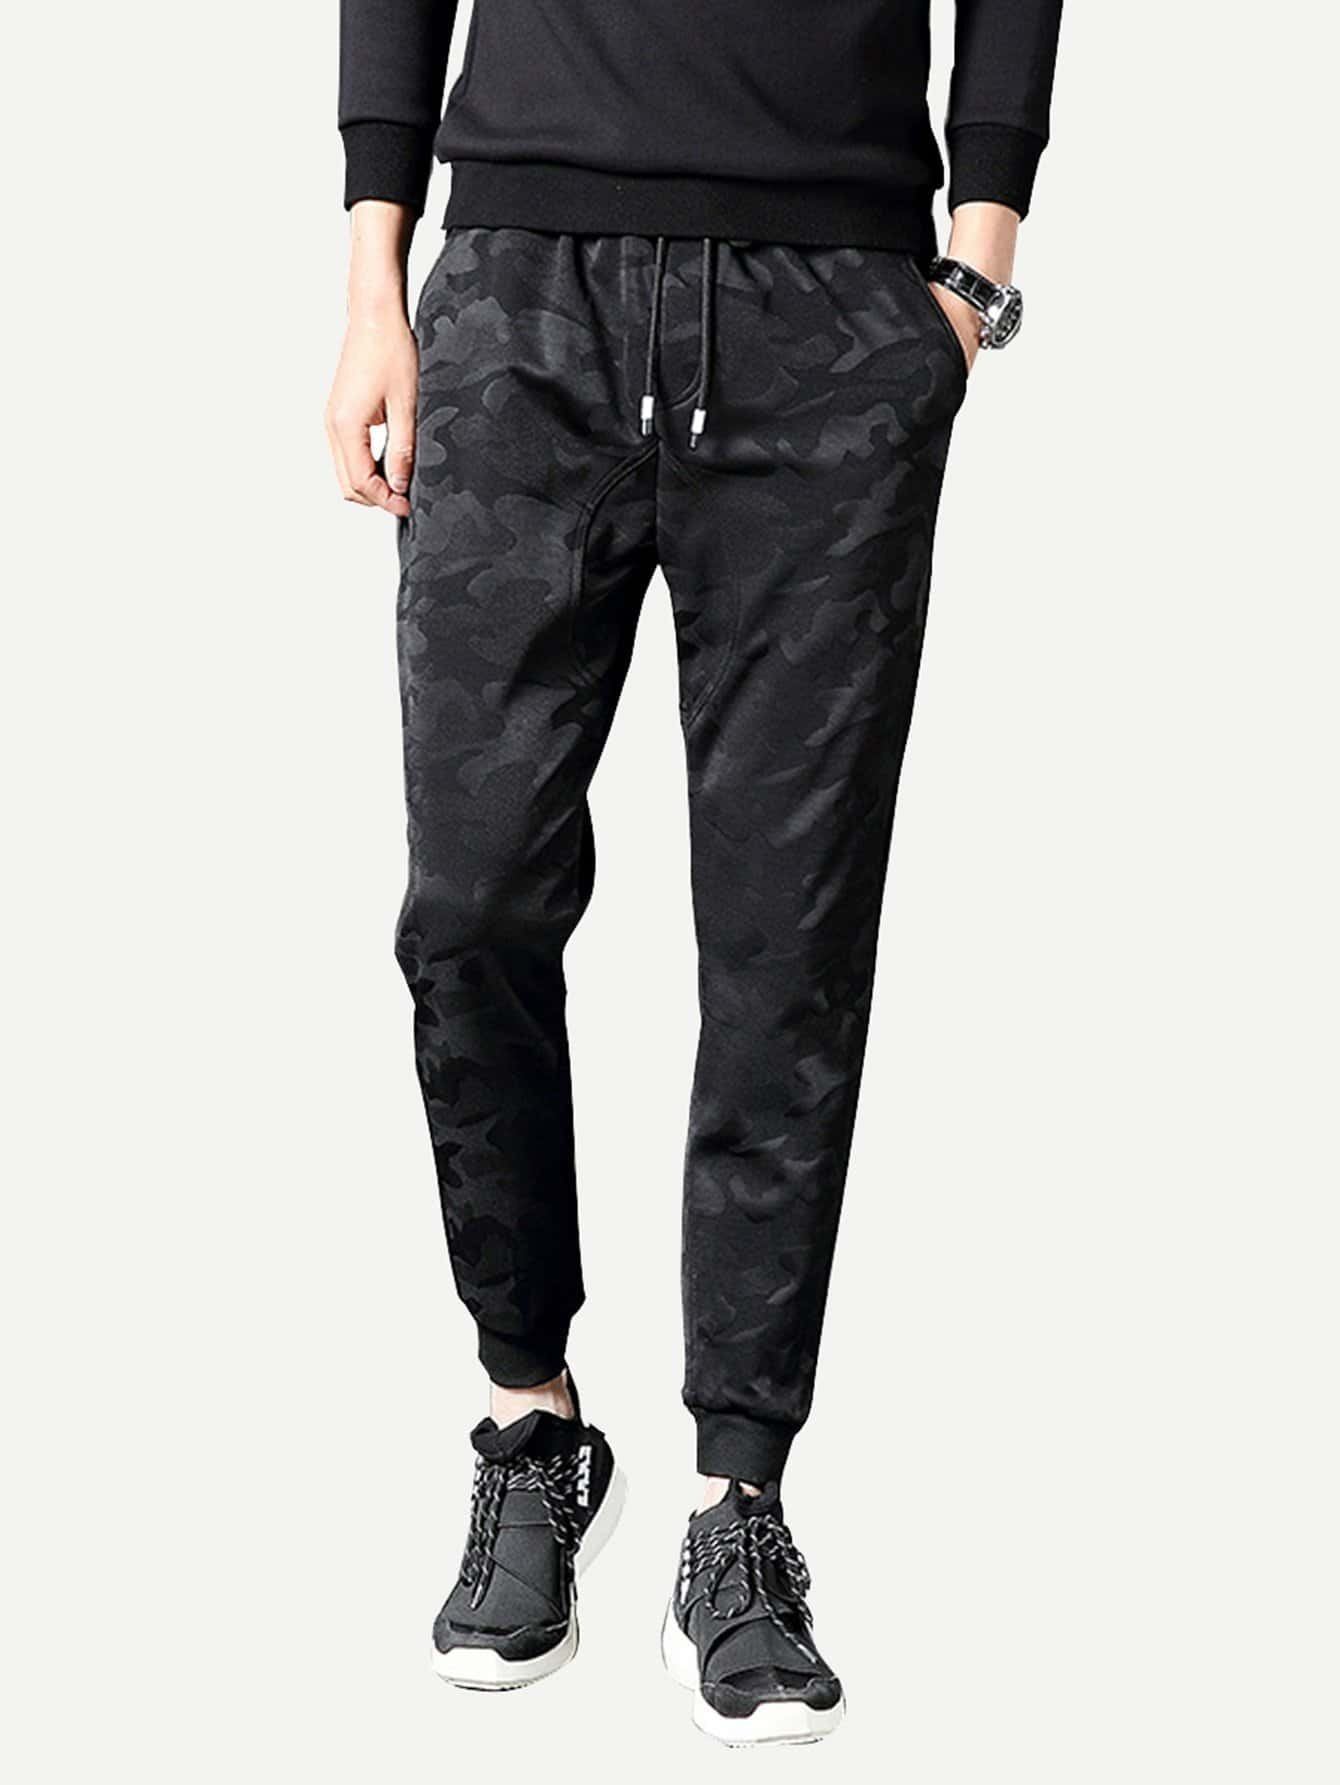 Men Camo Drawstring Pants idopy men s street style denim pants camouflage camo joggers stretchy drawstring biker cargo pants for hipster